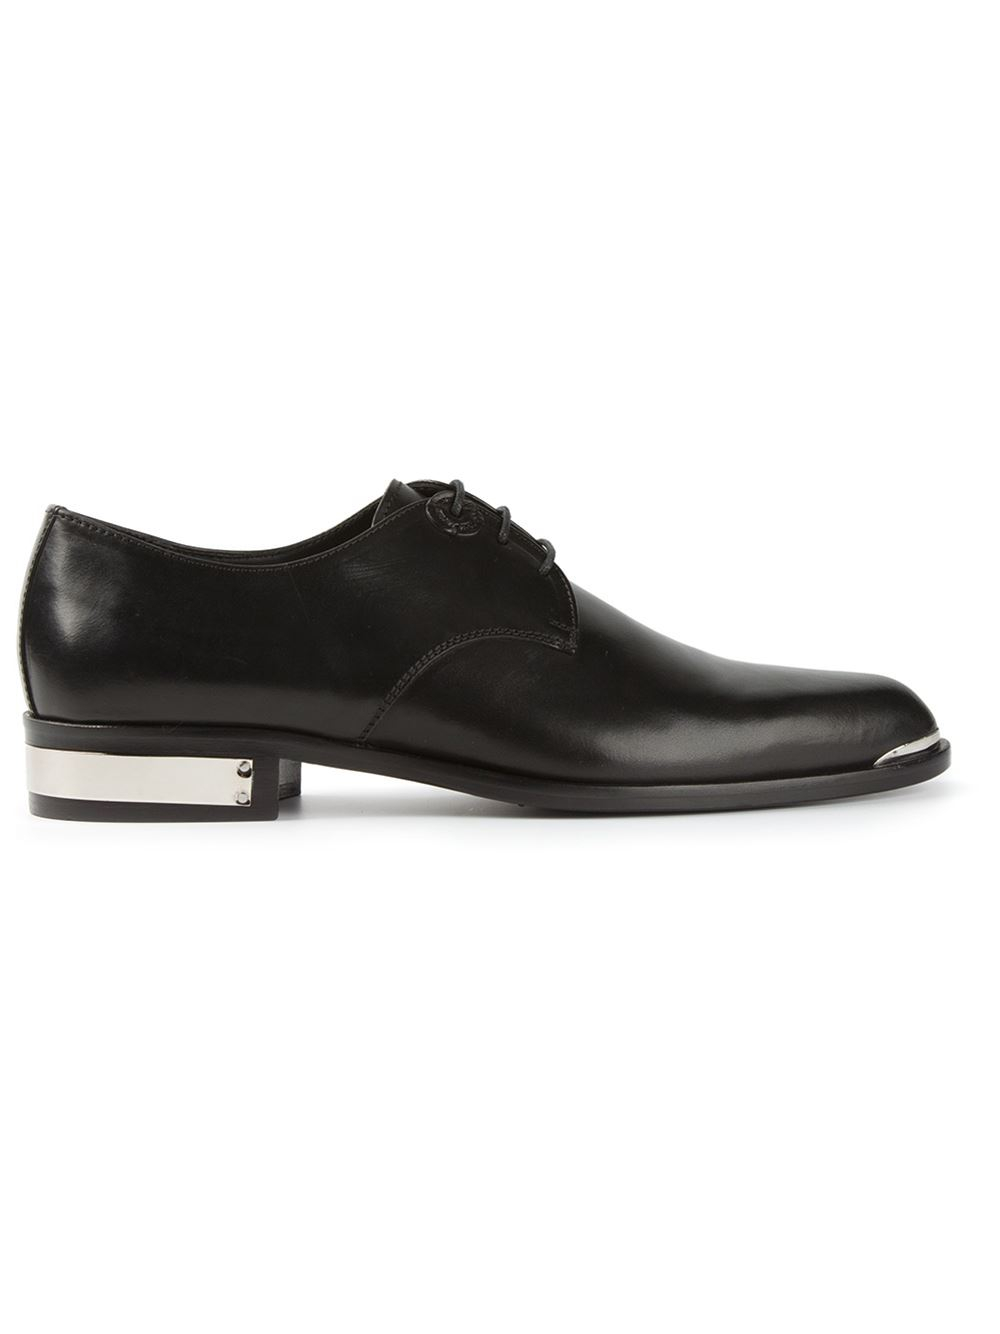 Diesel Black Gold Derby Shoes